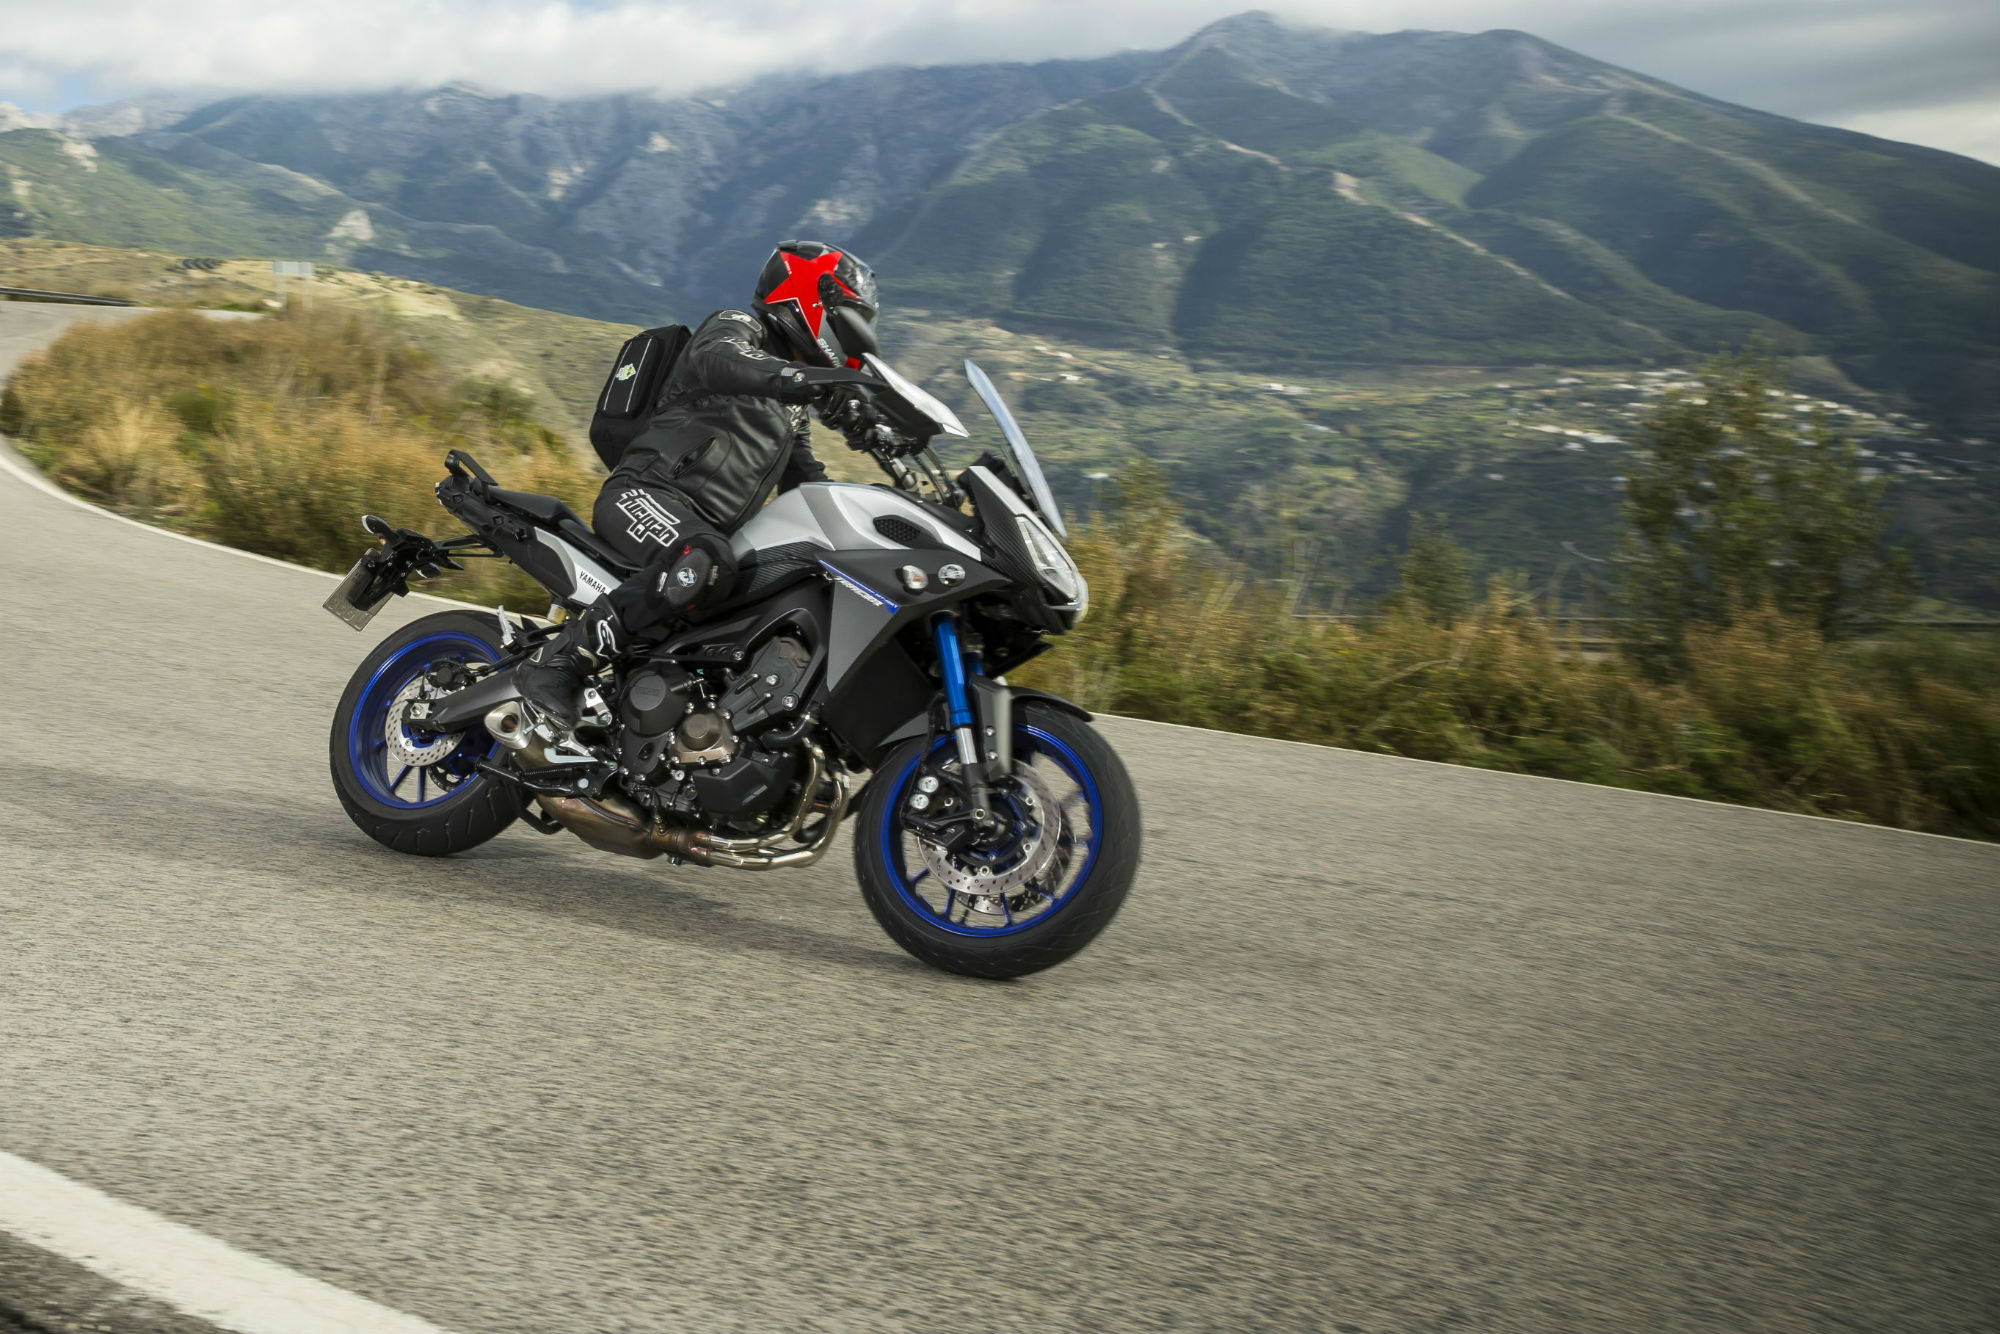 New bike registrations for October up over last year